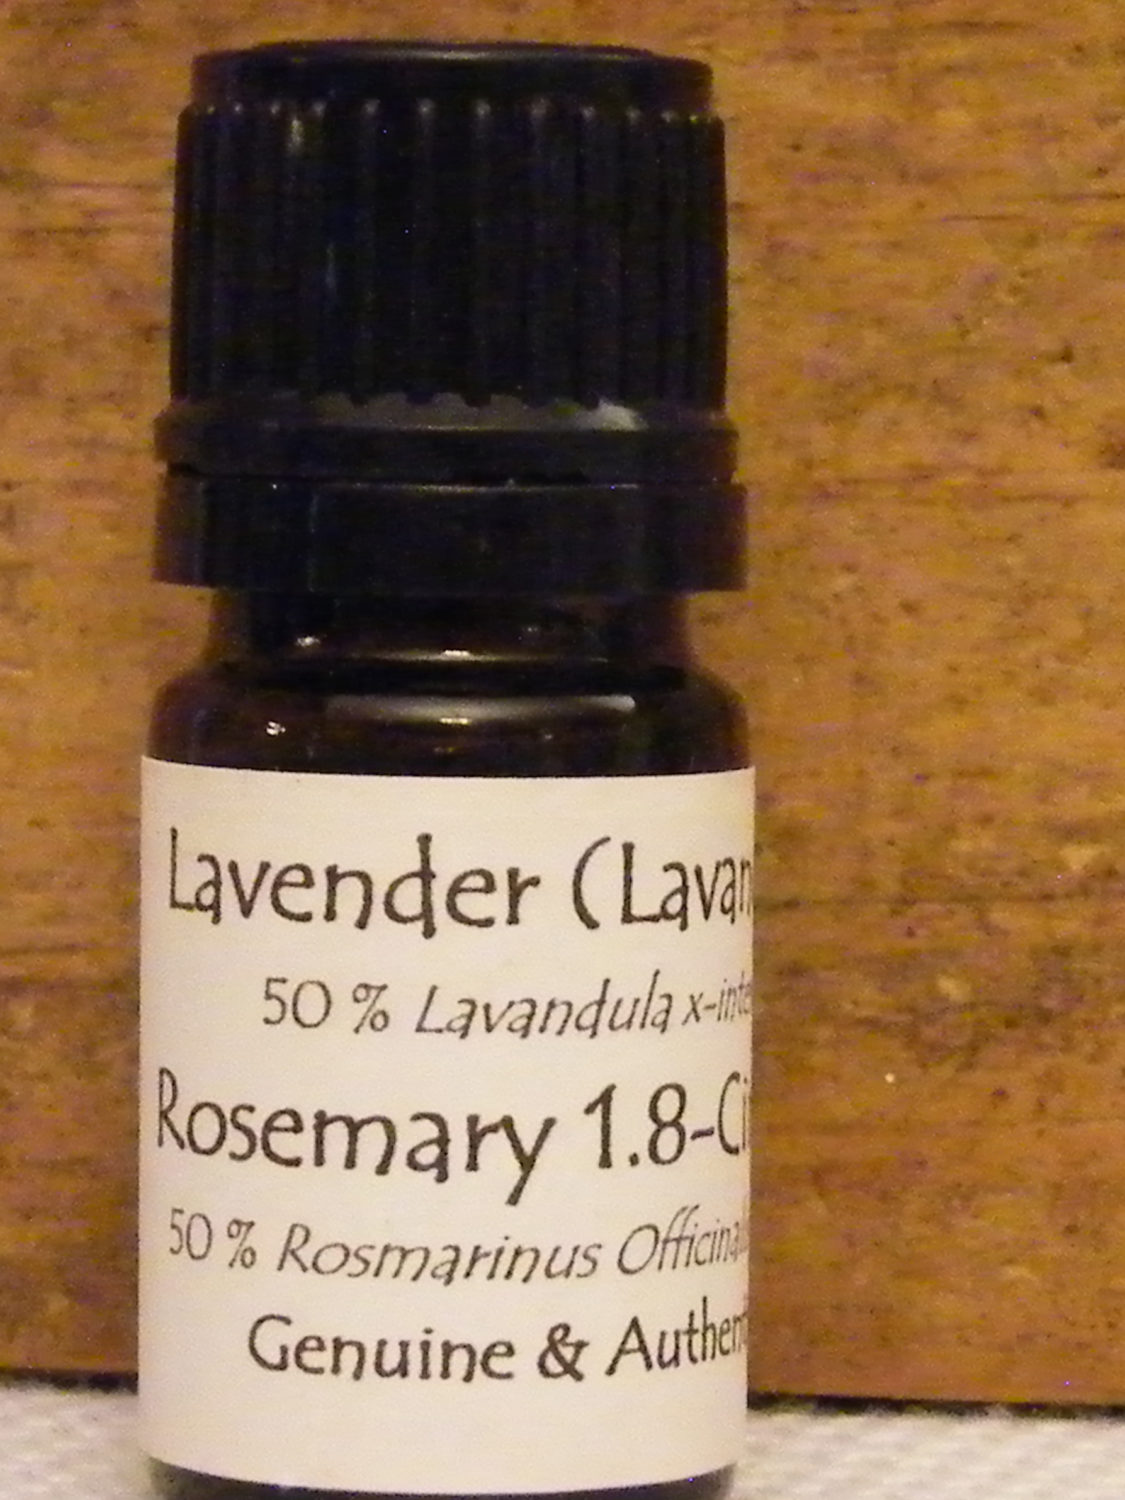 Genuine and Authentic Lavender and Rosemary Essential Oil